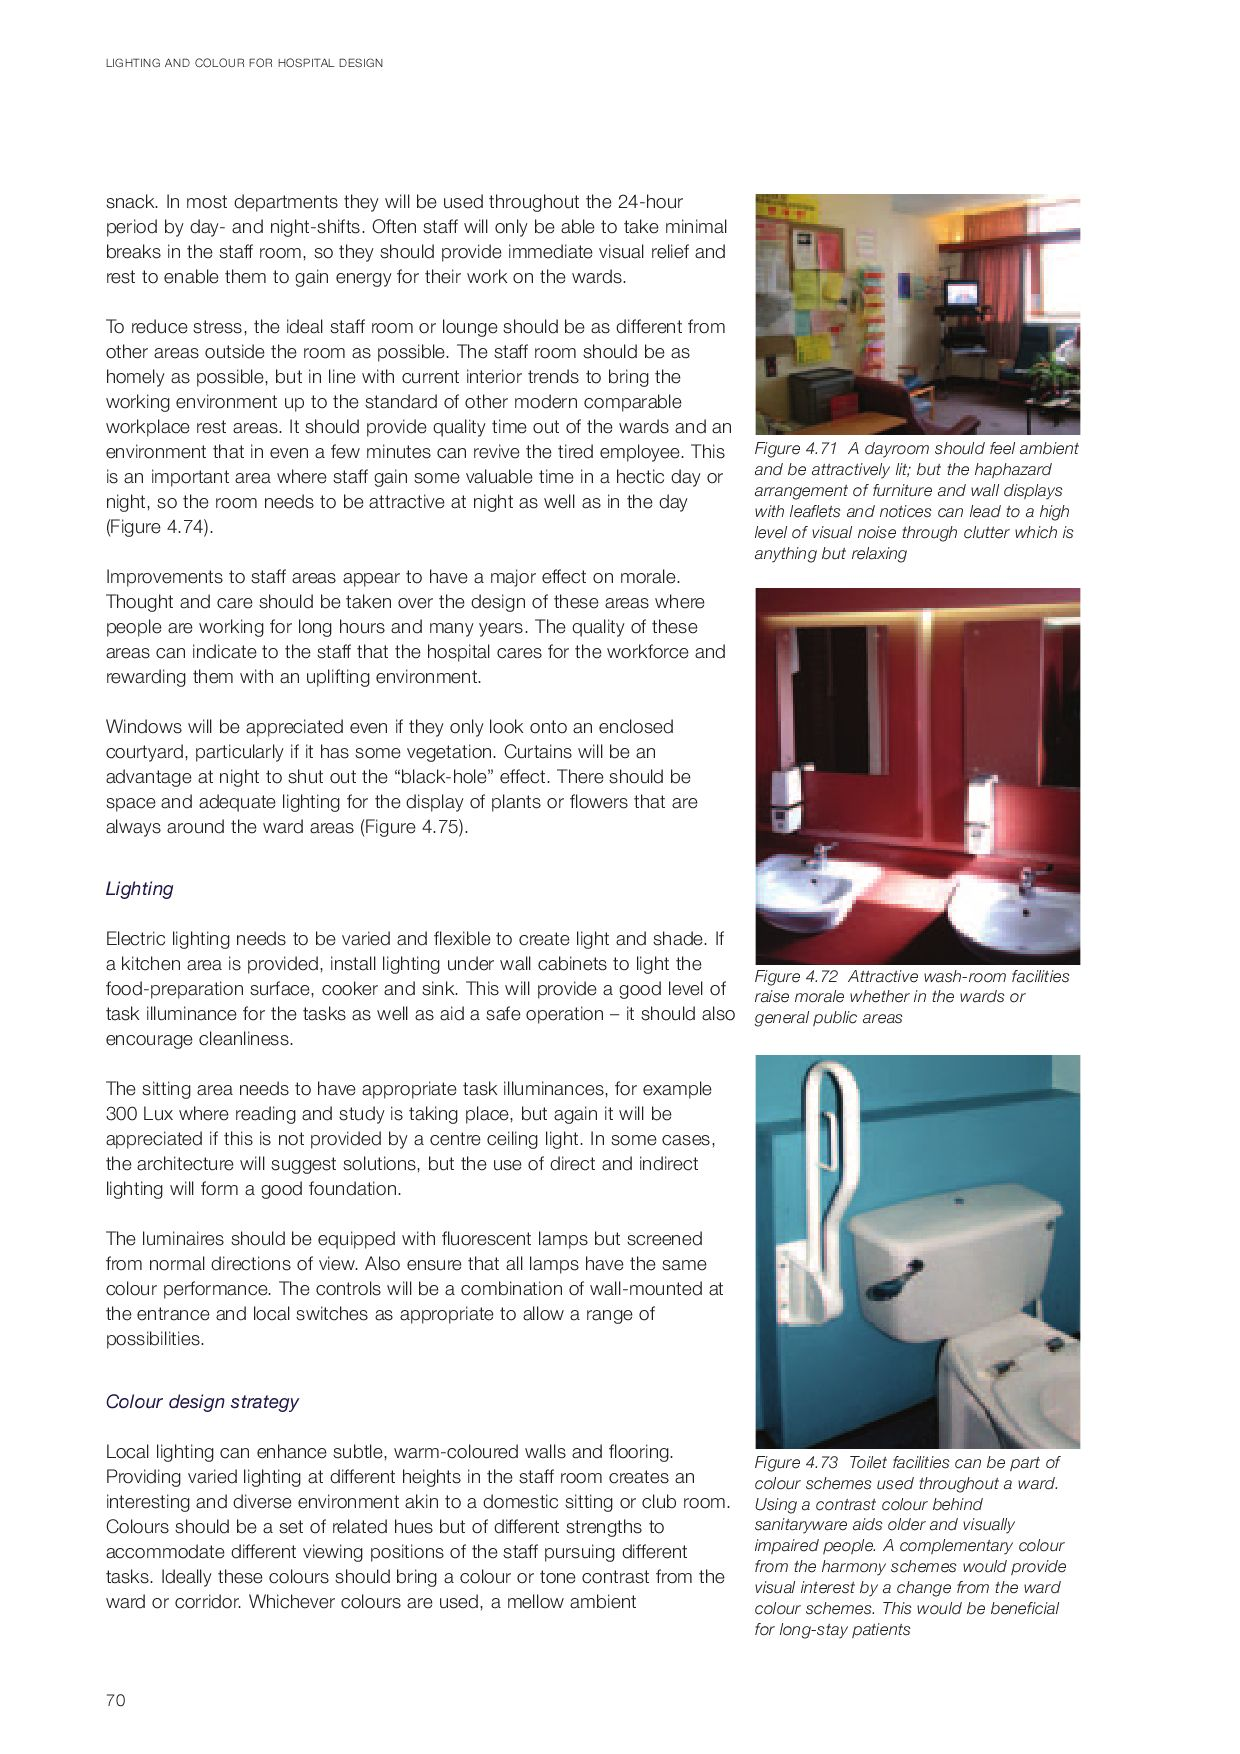 Nhs Lighting And Colour For Hospital Lighting Design By